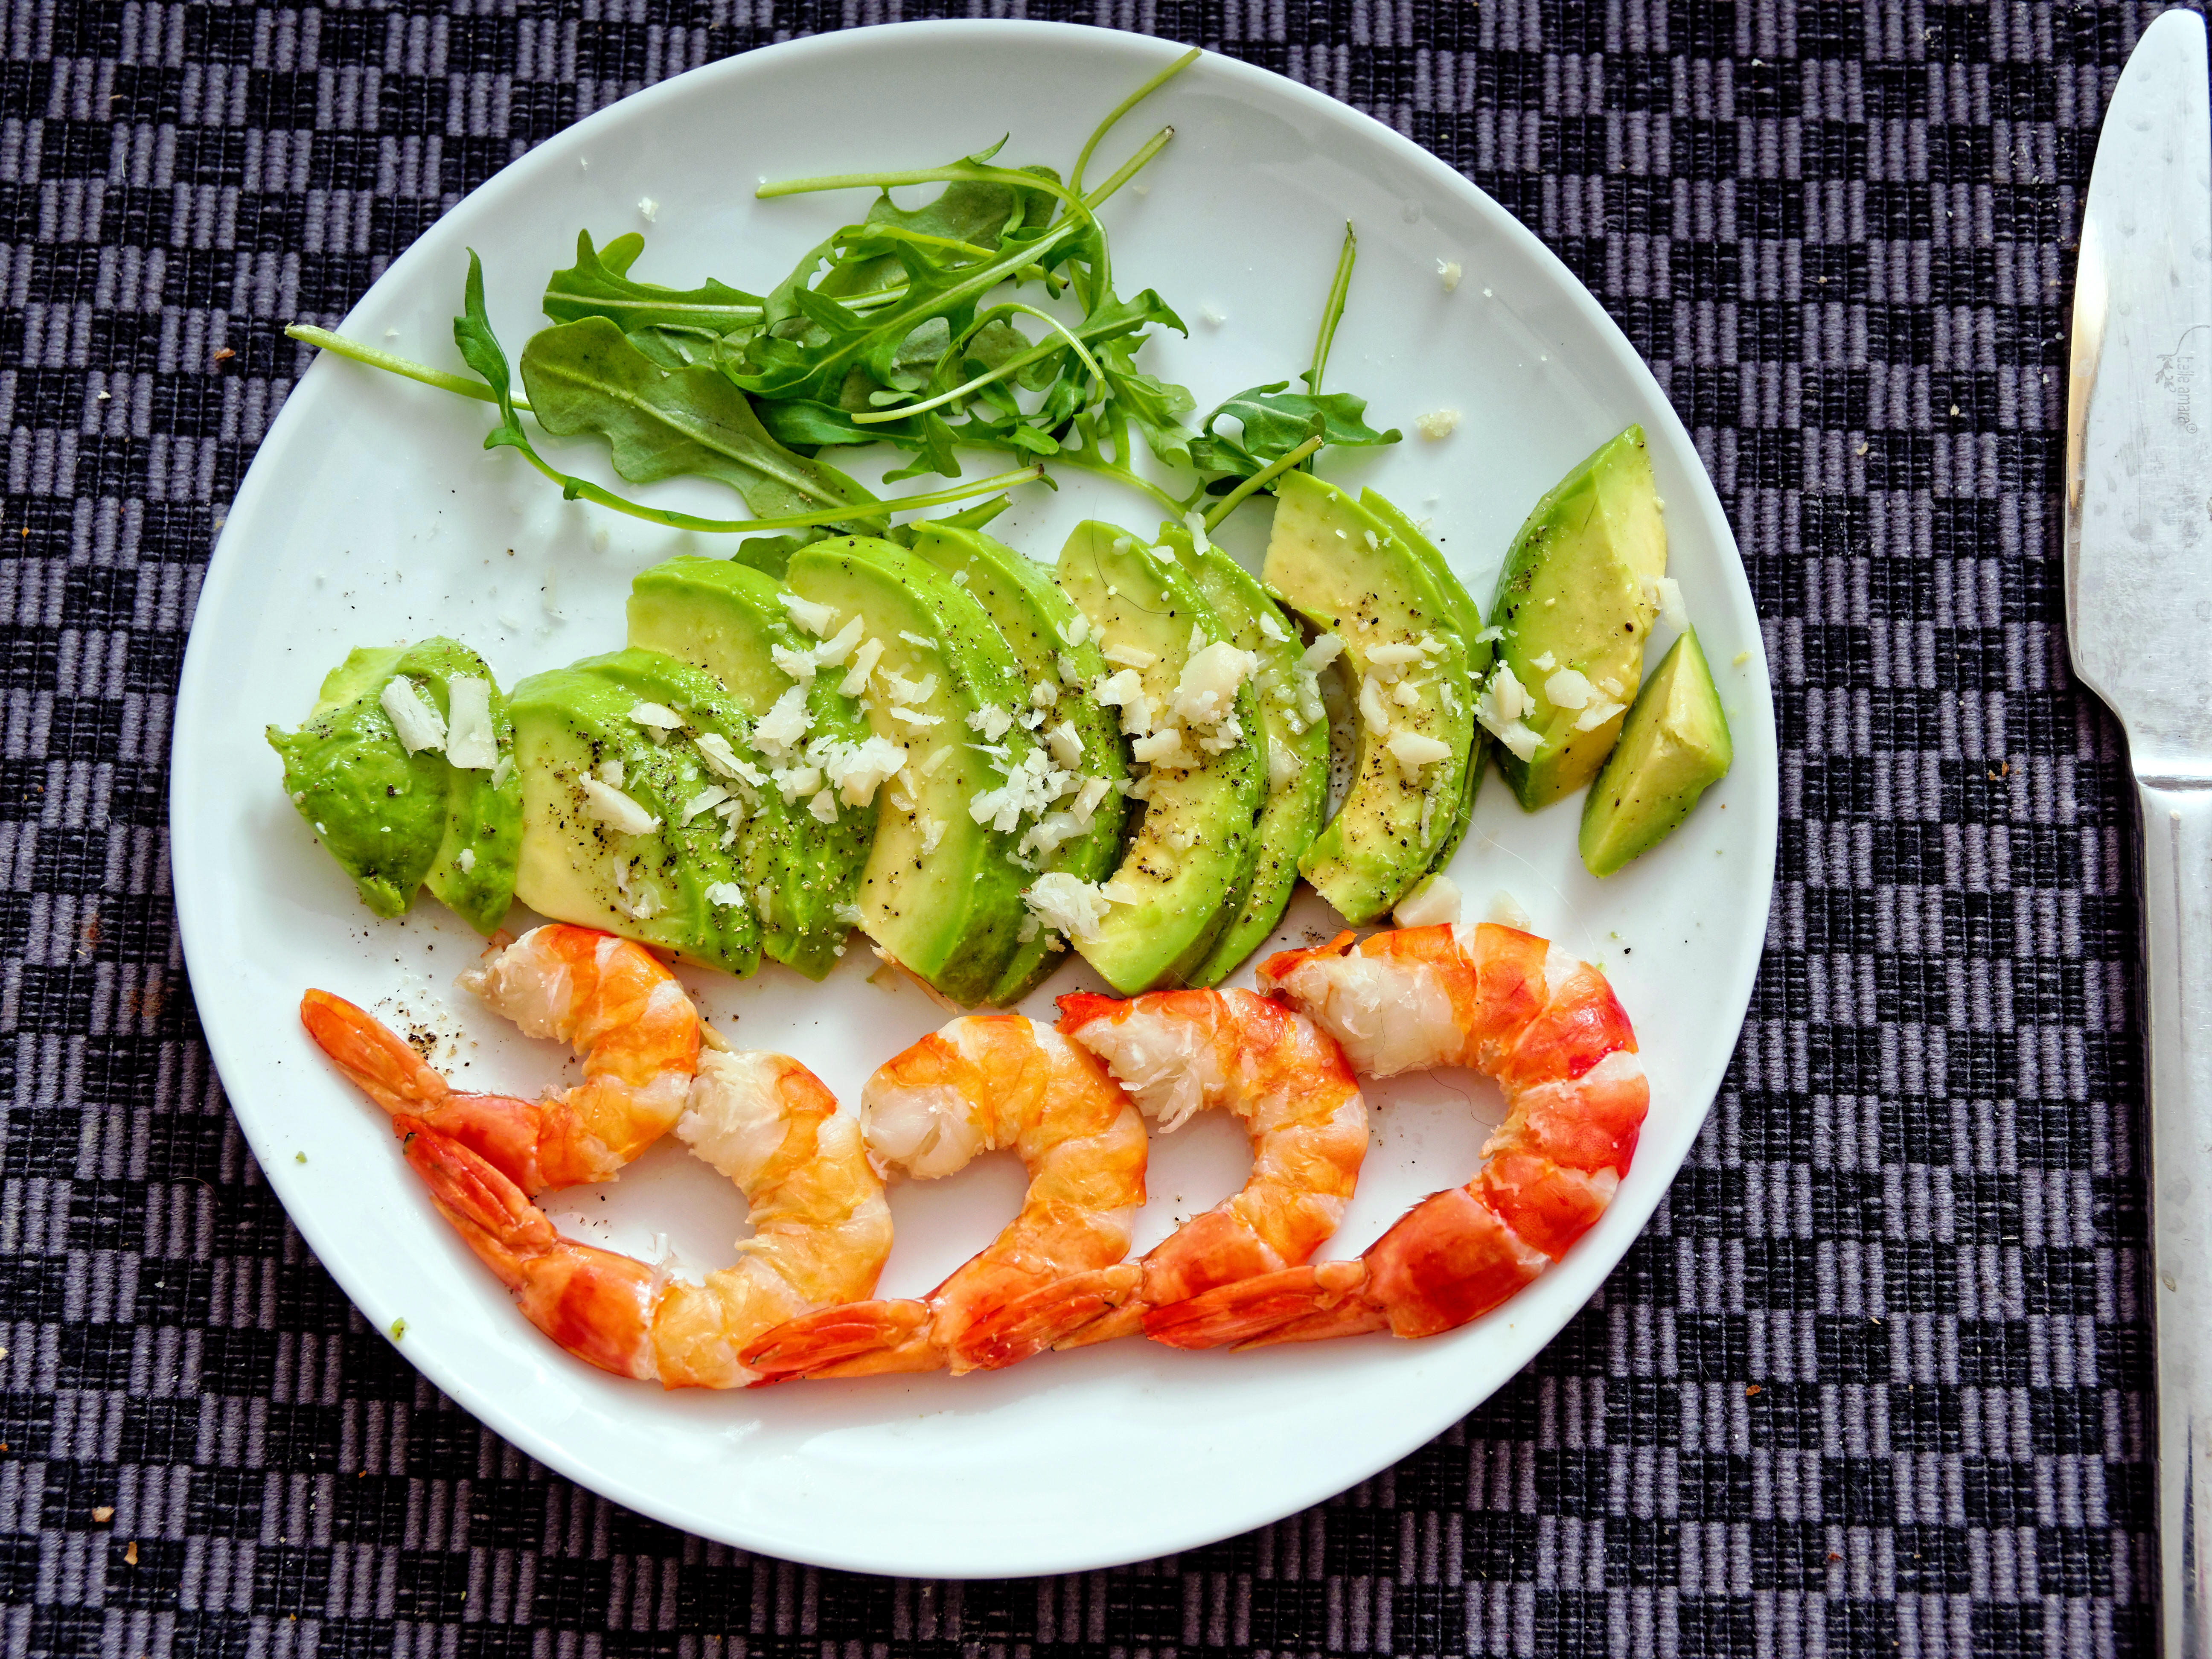 Prawns-and-avocado.jpeg